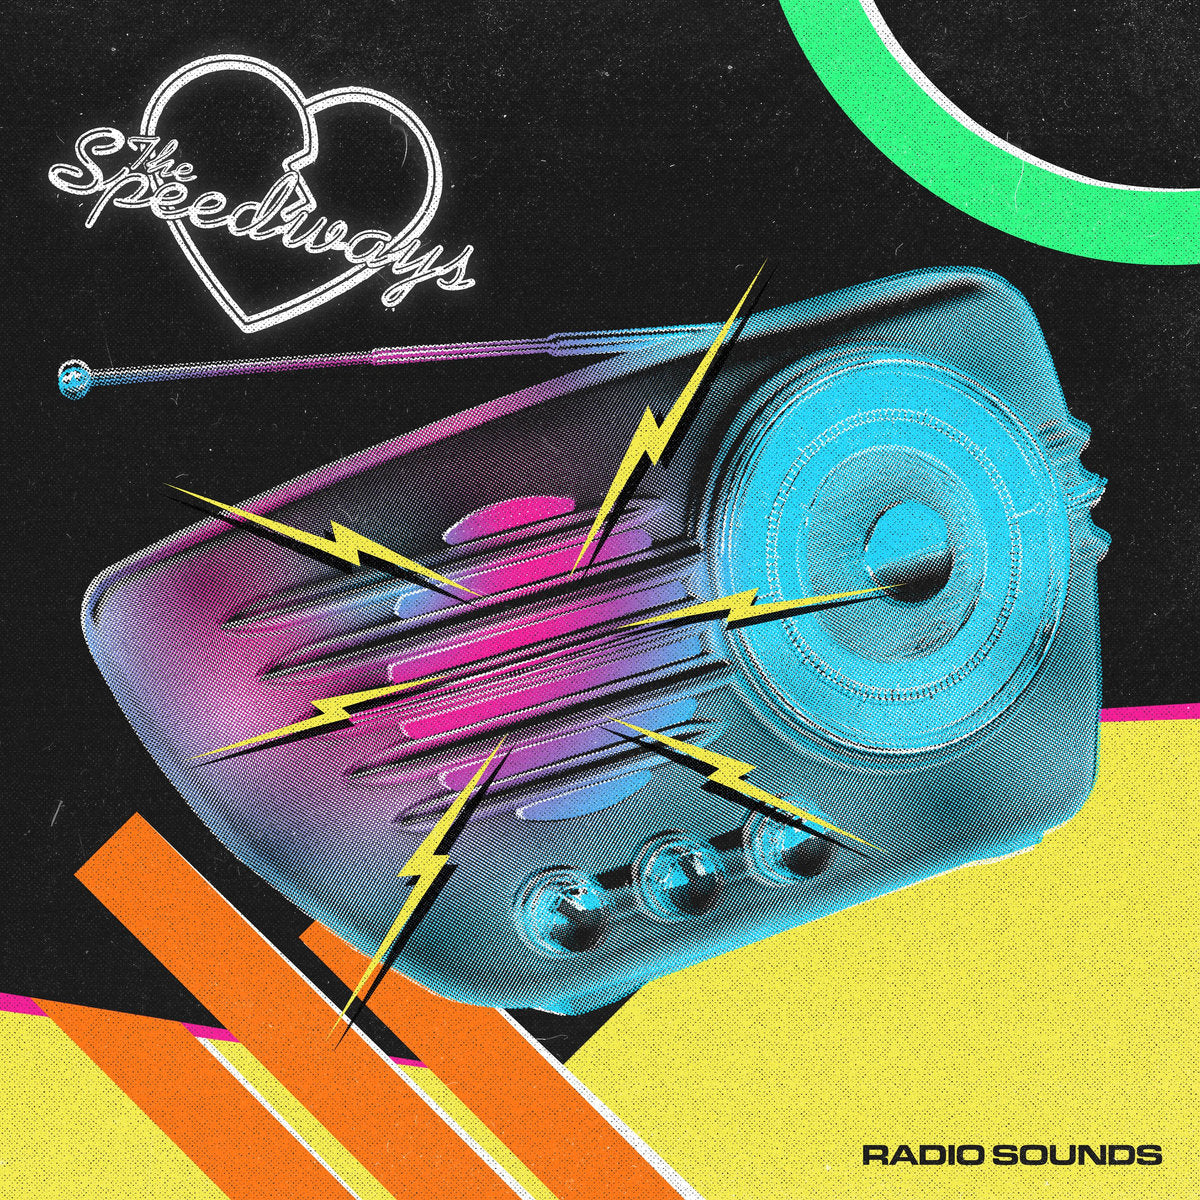 Speedways, The - Radio Sounds [IMPORT] – New LP